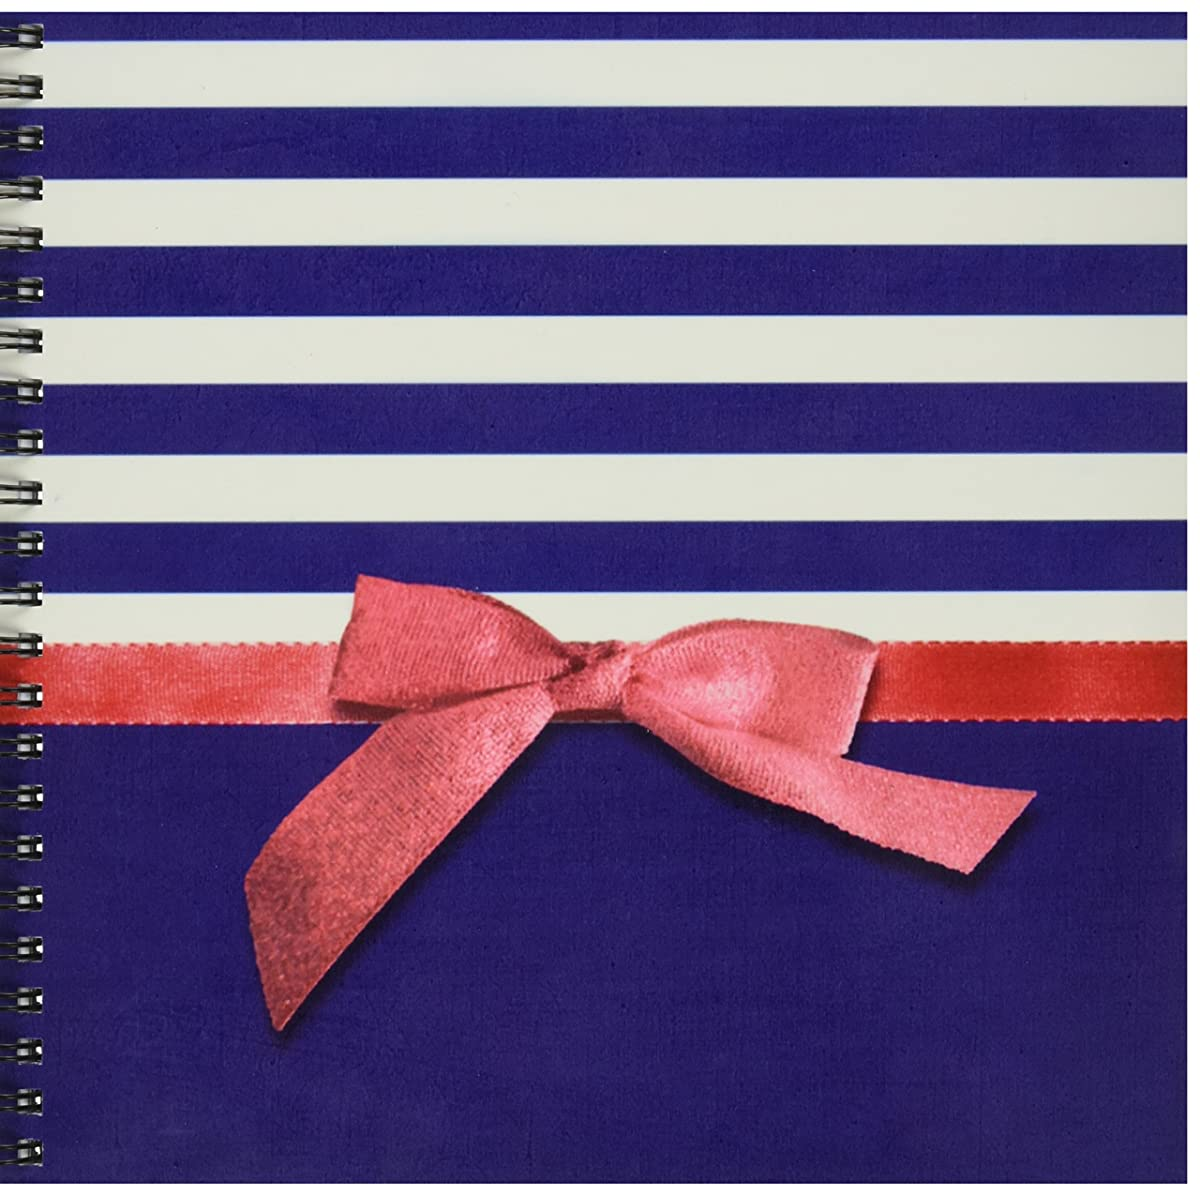 3dRose db_151232_1 Nautical Navy Blue and White Stripes-Faux Red Ribbon Bow Graphic Girly Sailor Classy Retro-Drawing Book, 8 by 8-Inch